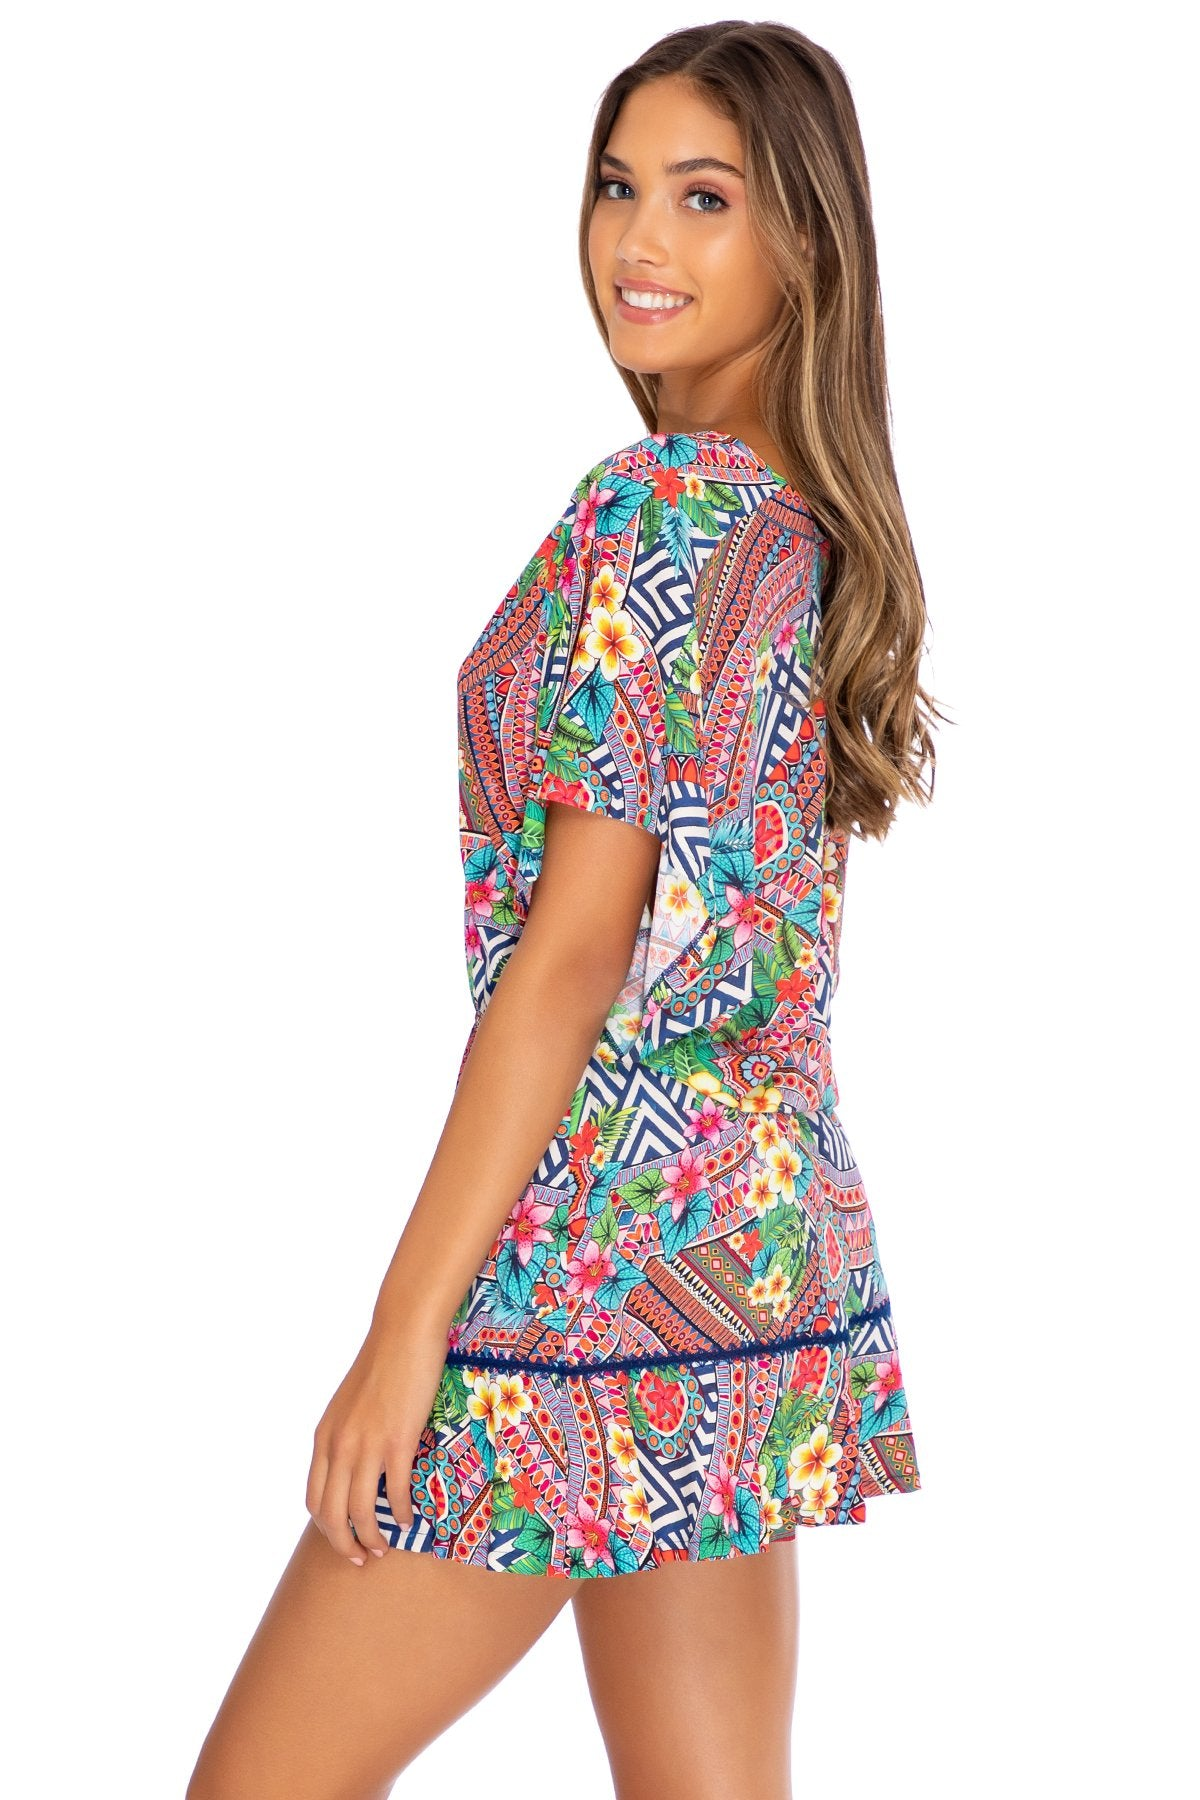 LULI TRIBE - Playera Ruffle Dress • Multicolor